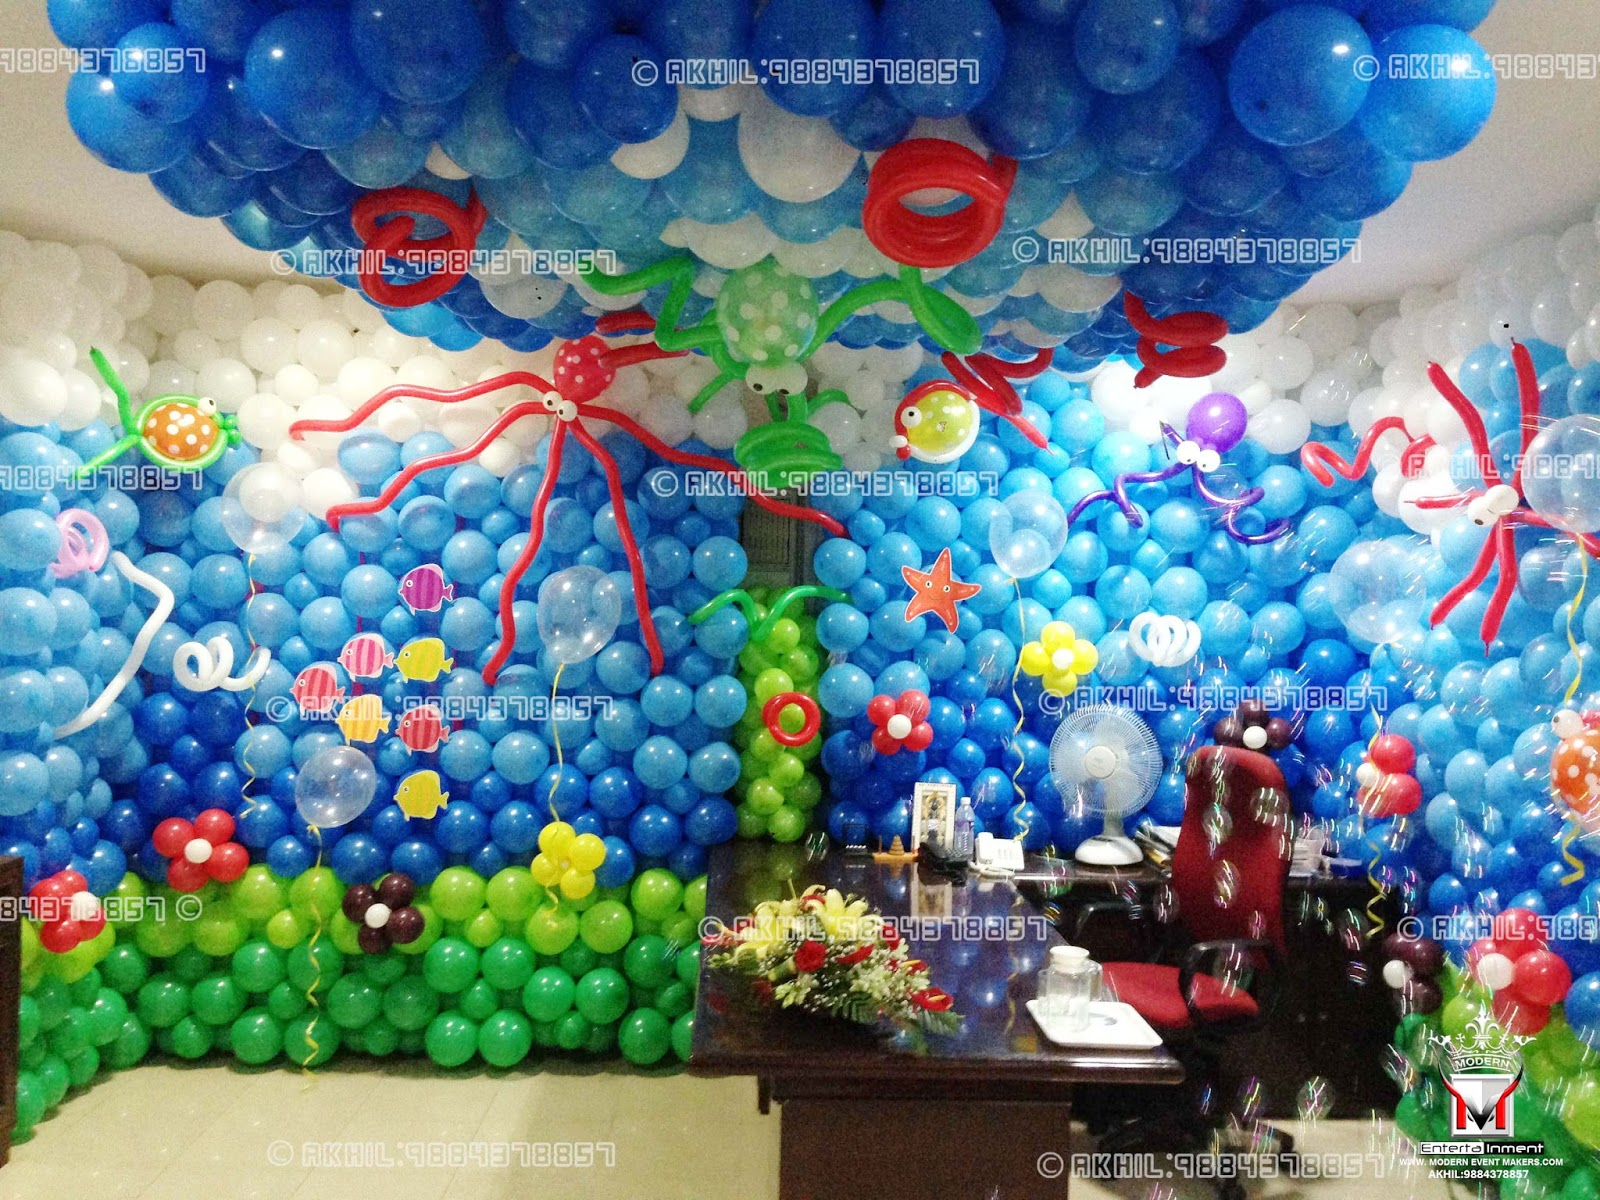 A top class balloon decorators in chennai akhil 9884378857 for Balloon decoration for birthday party